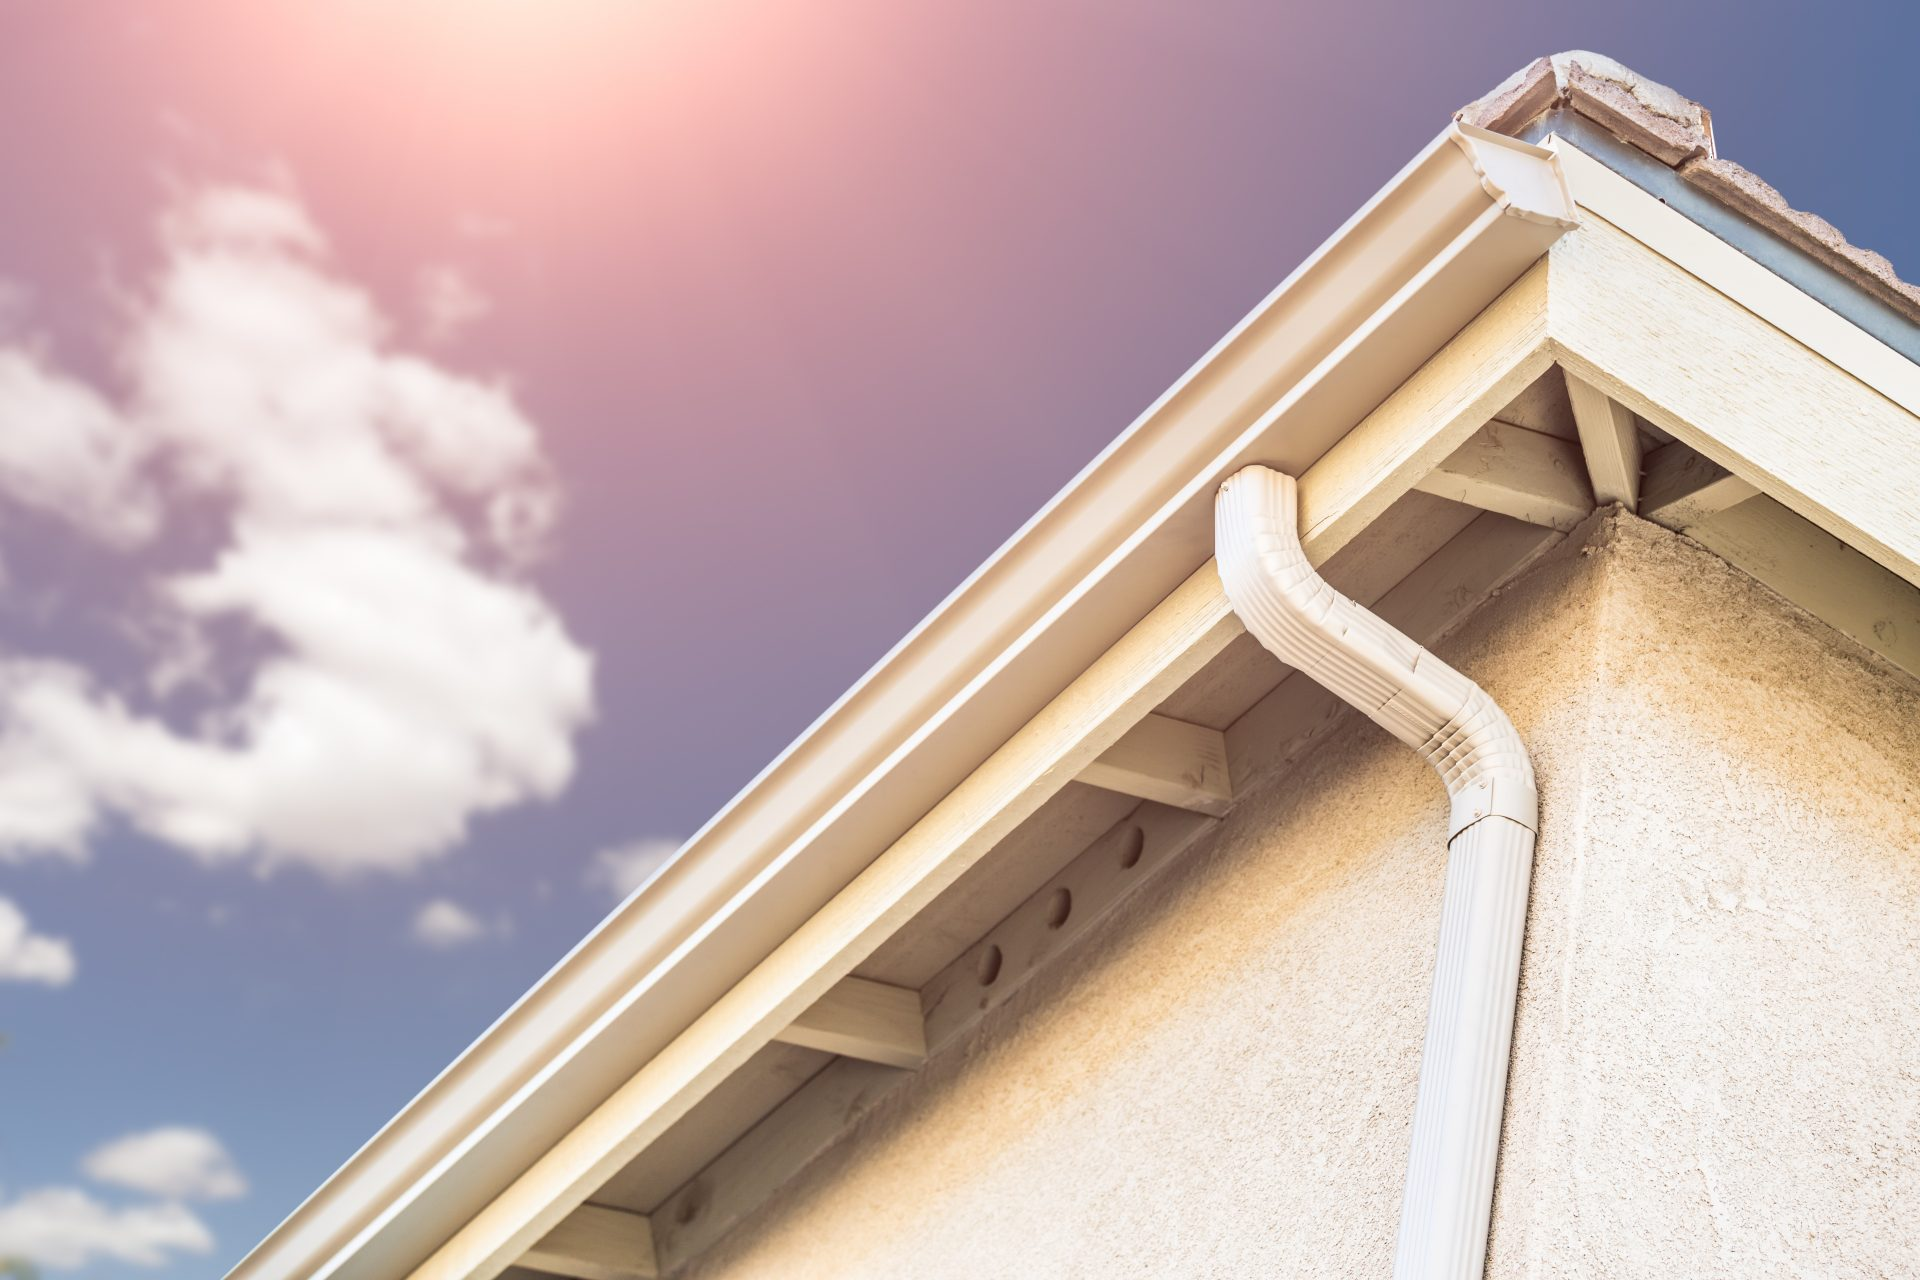 10 Gutter and Downspout Runoff Drainage Tips